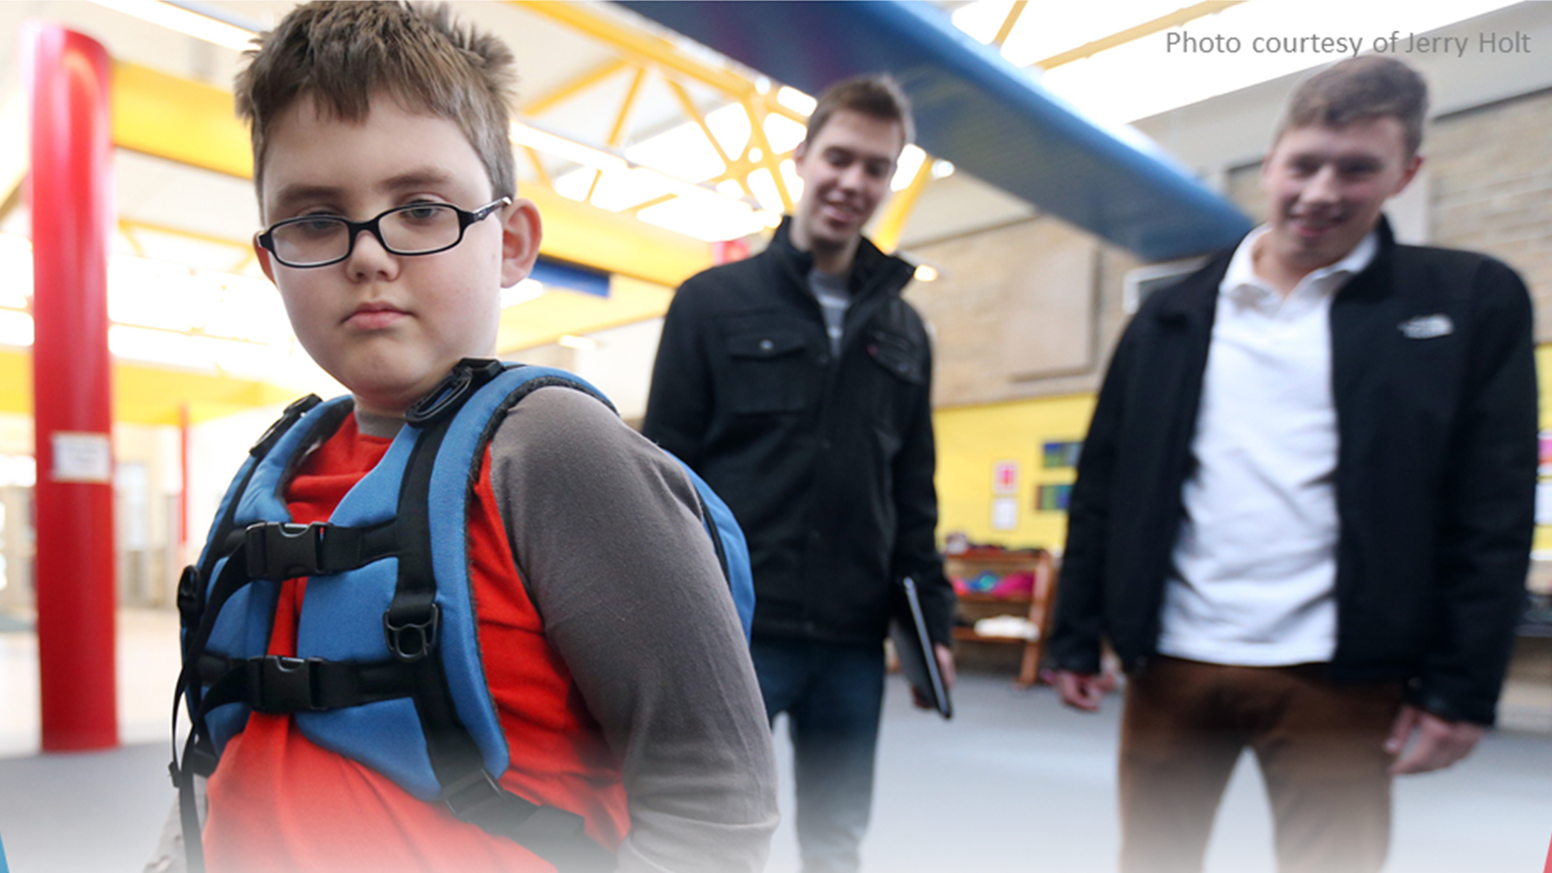 We are Nesel Packs - a company that creates backpacks for students with autism to help them thrive at school and in life.